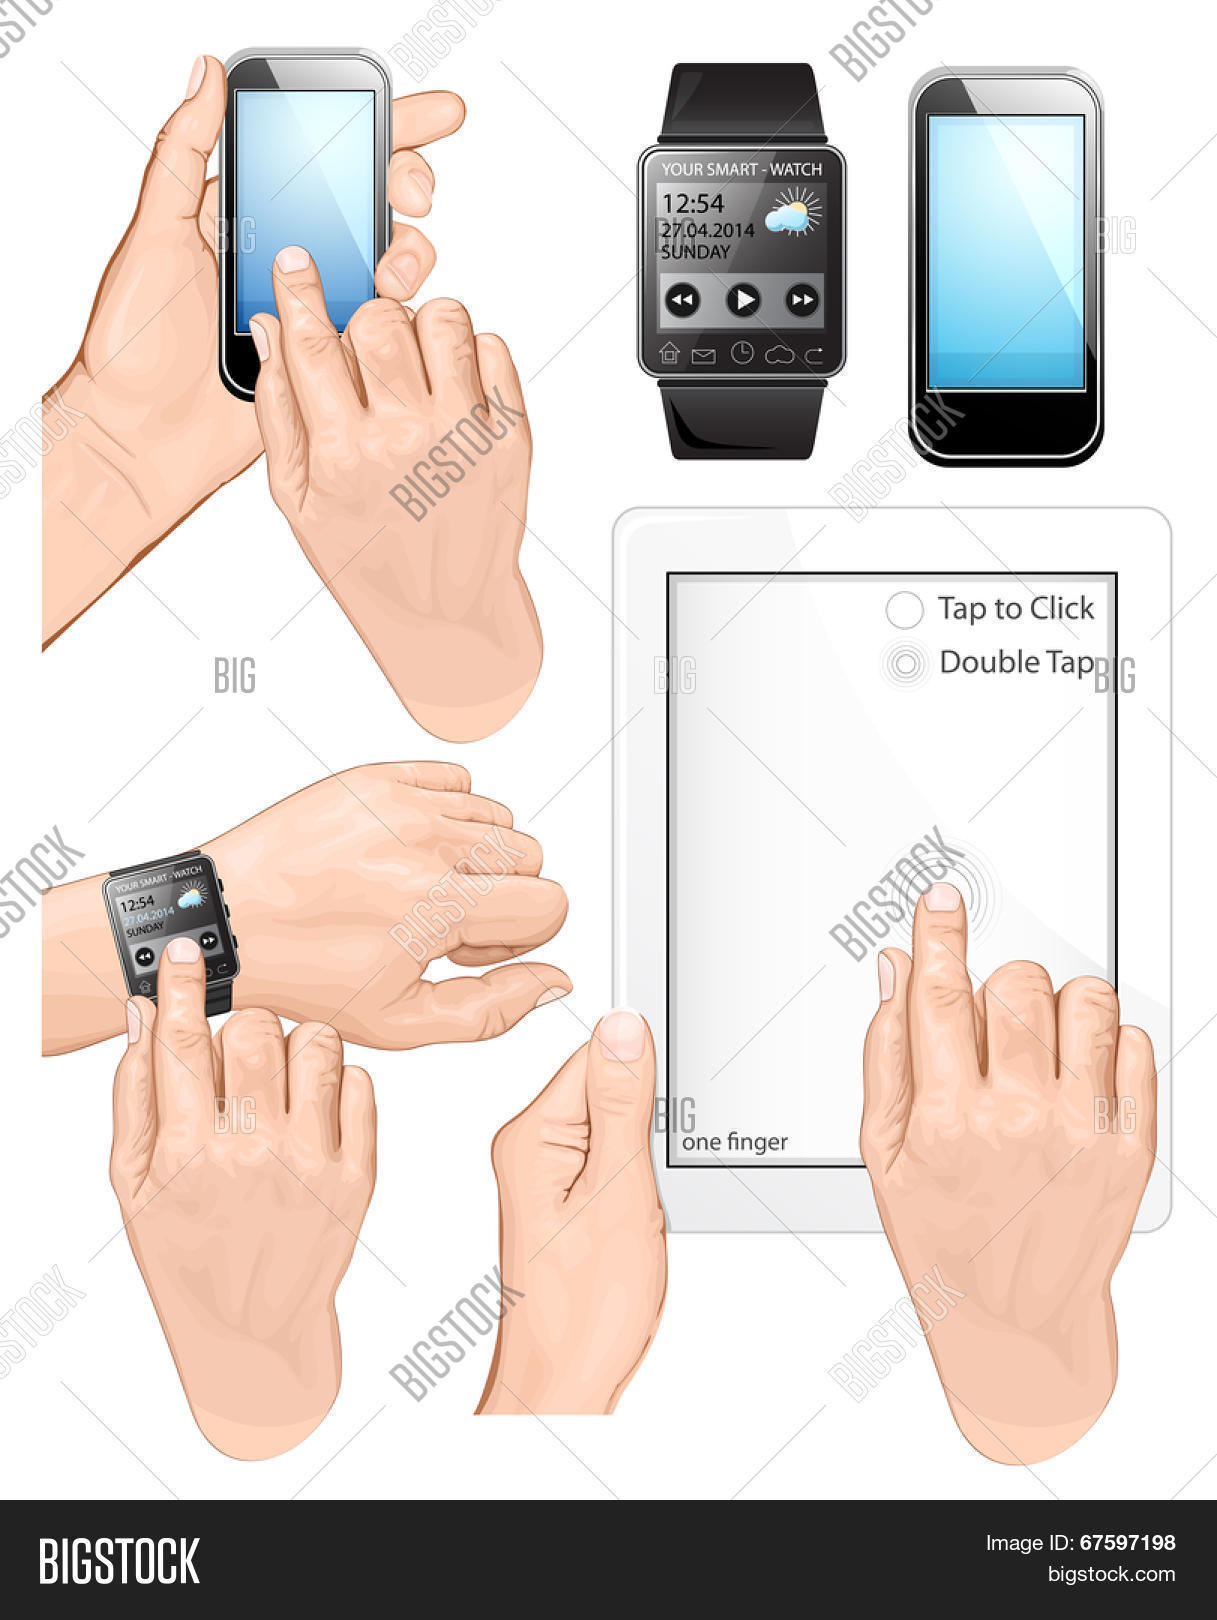 32 programs for cell phone tapping software